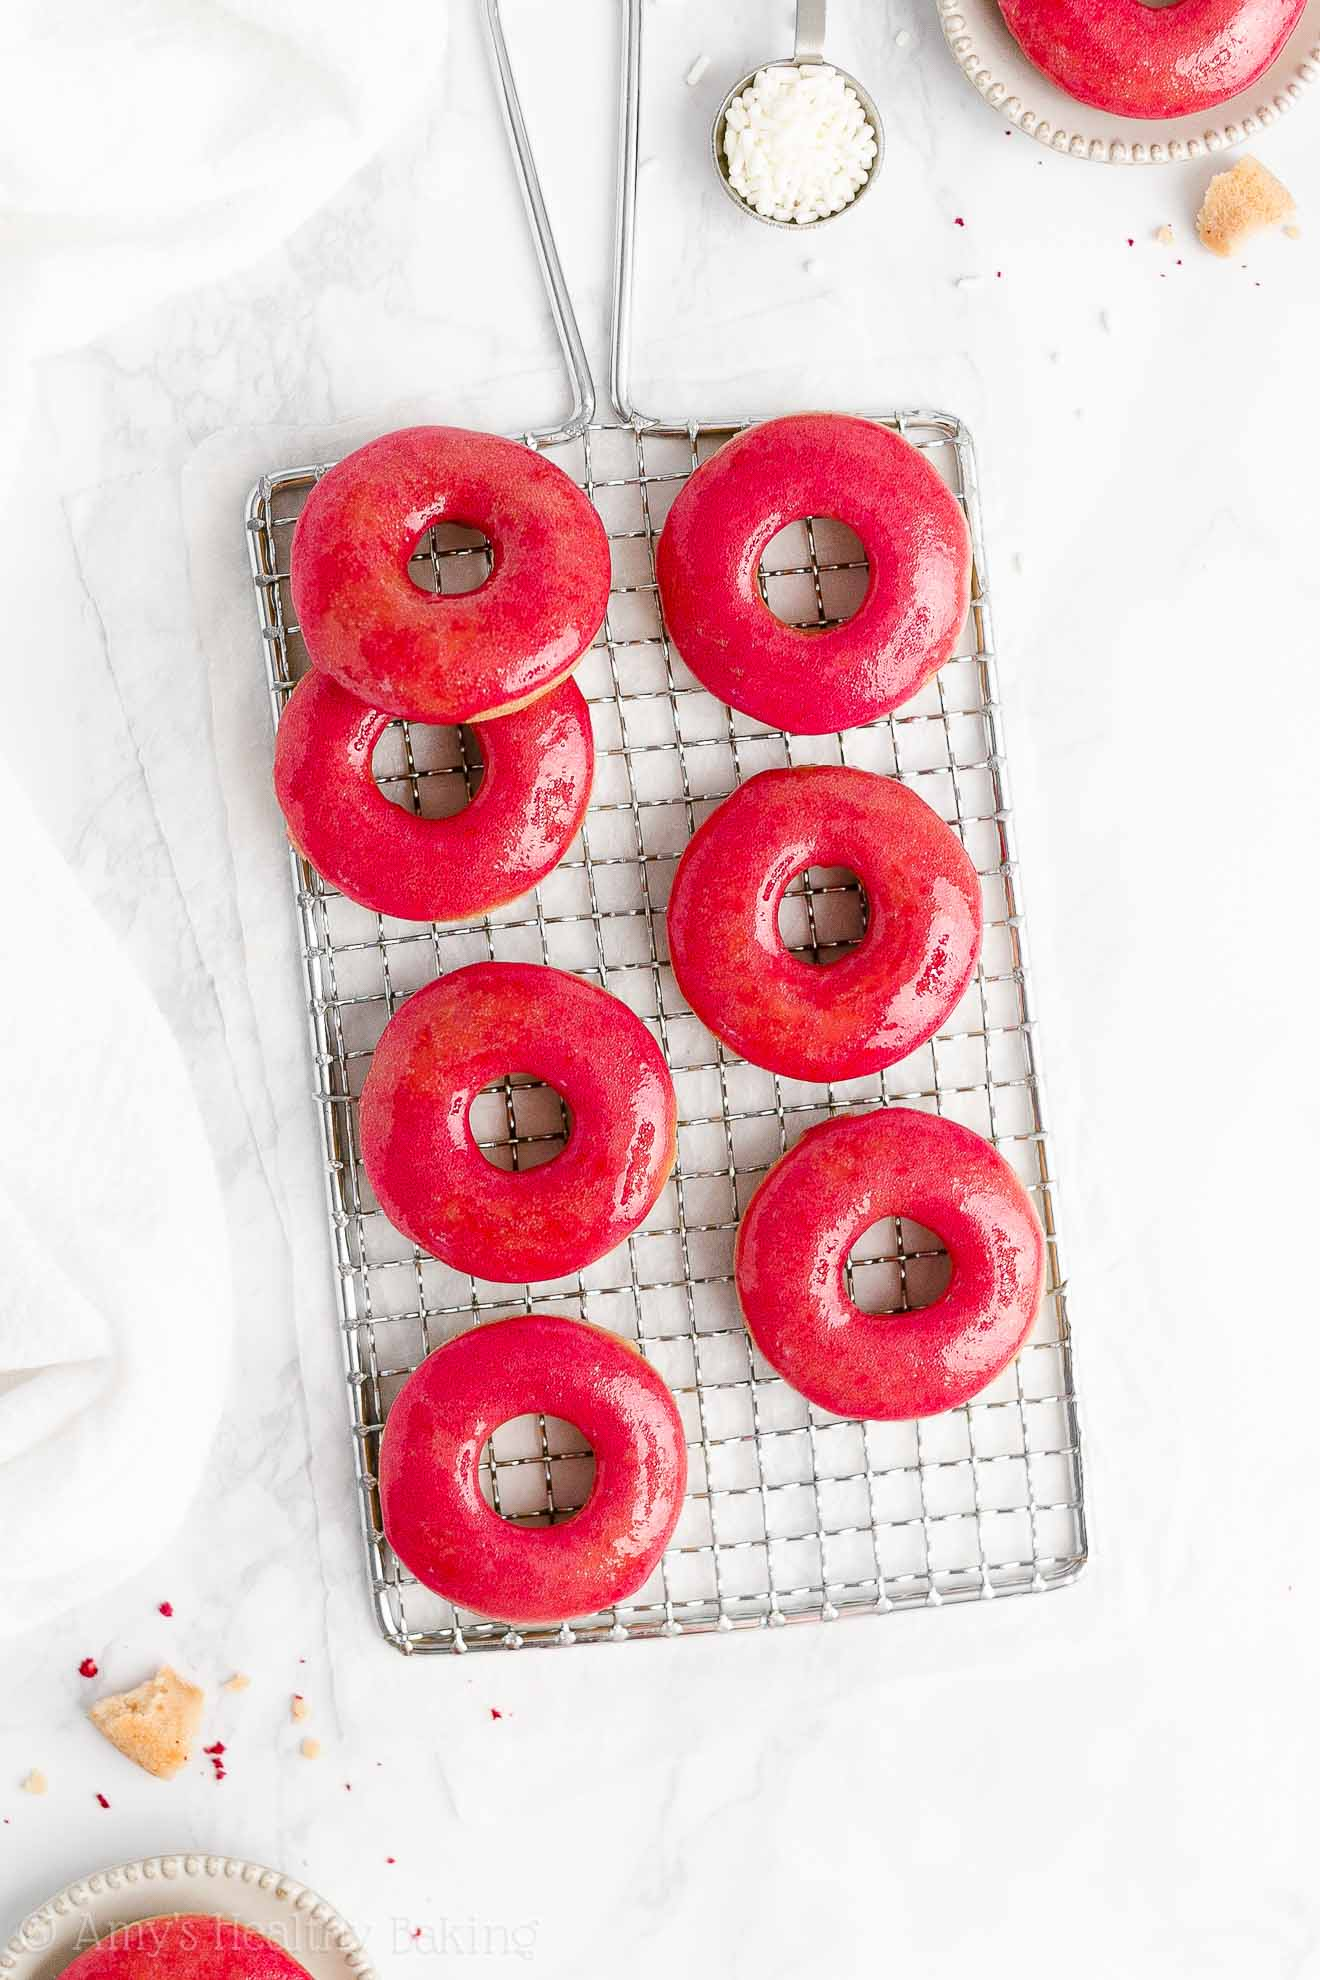 BEST Healthy Baked No Yeast Vanilla Donuts with Sugar Free Raspberry Glaze